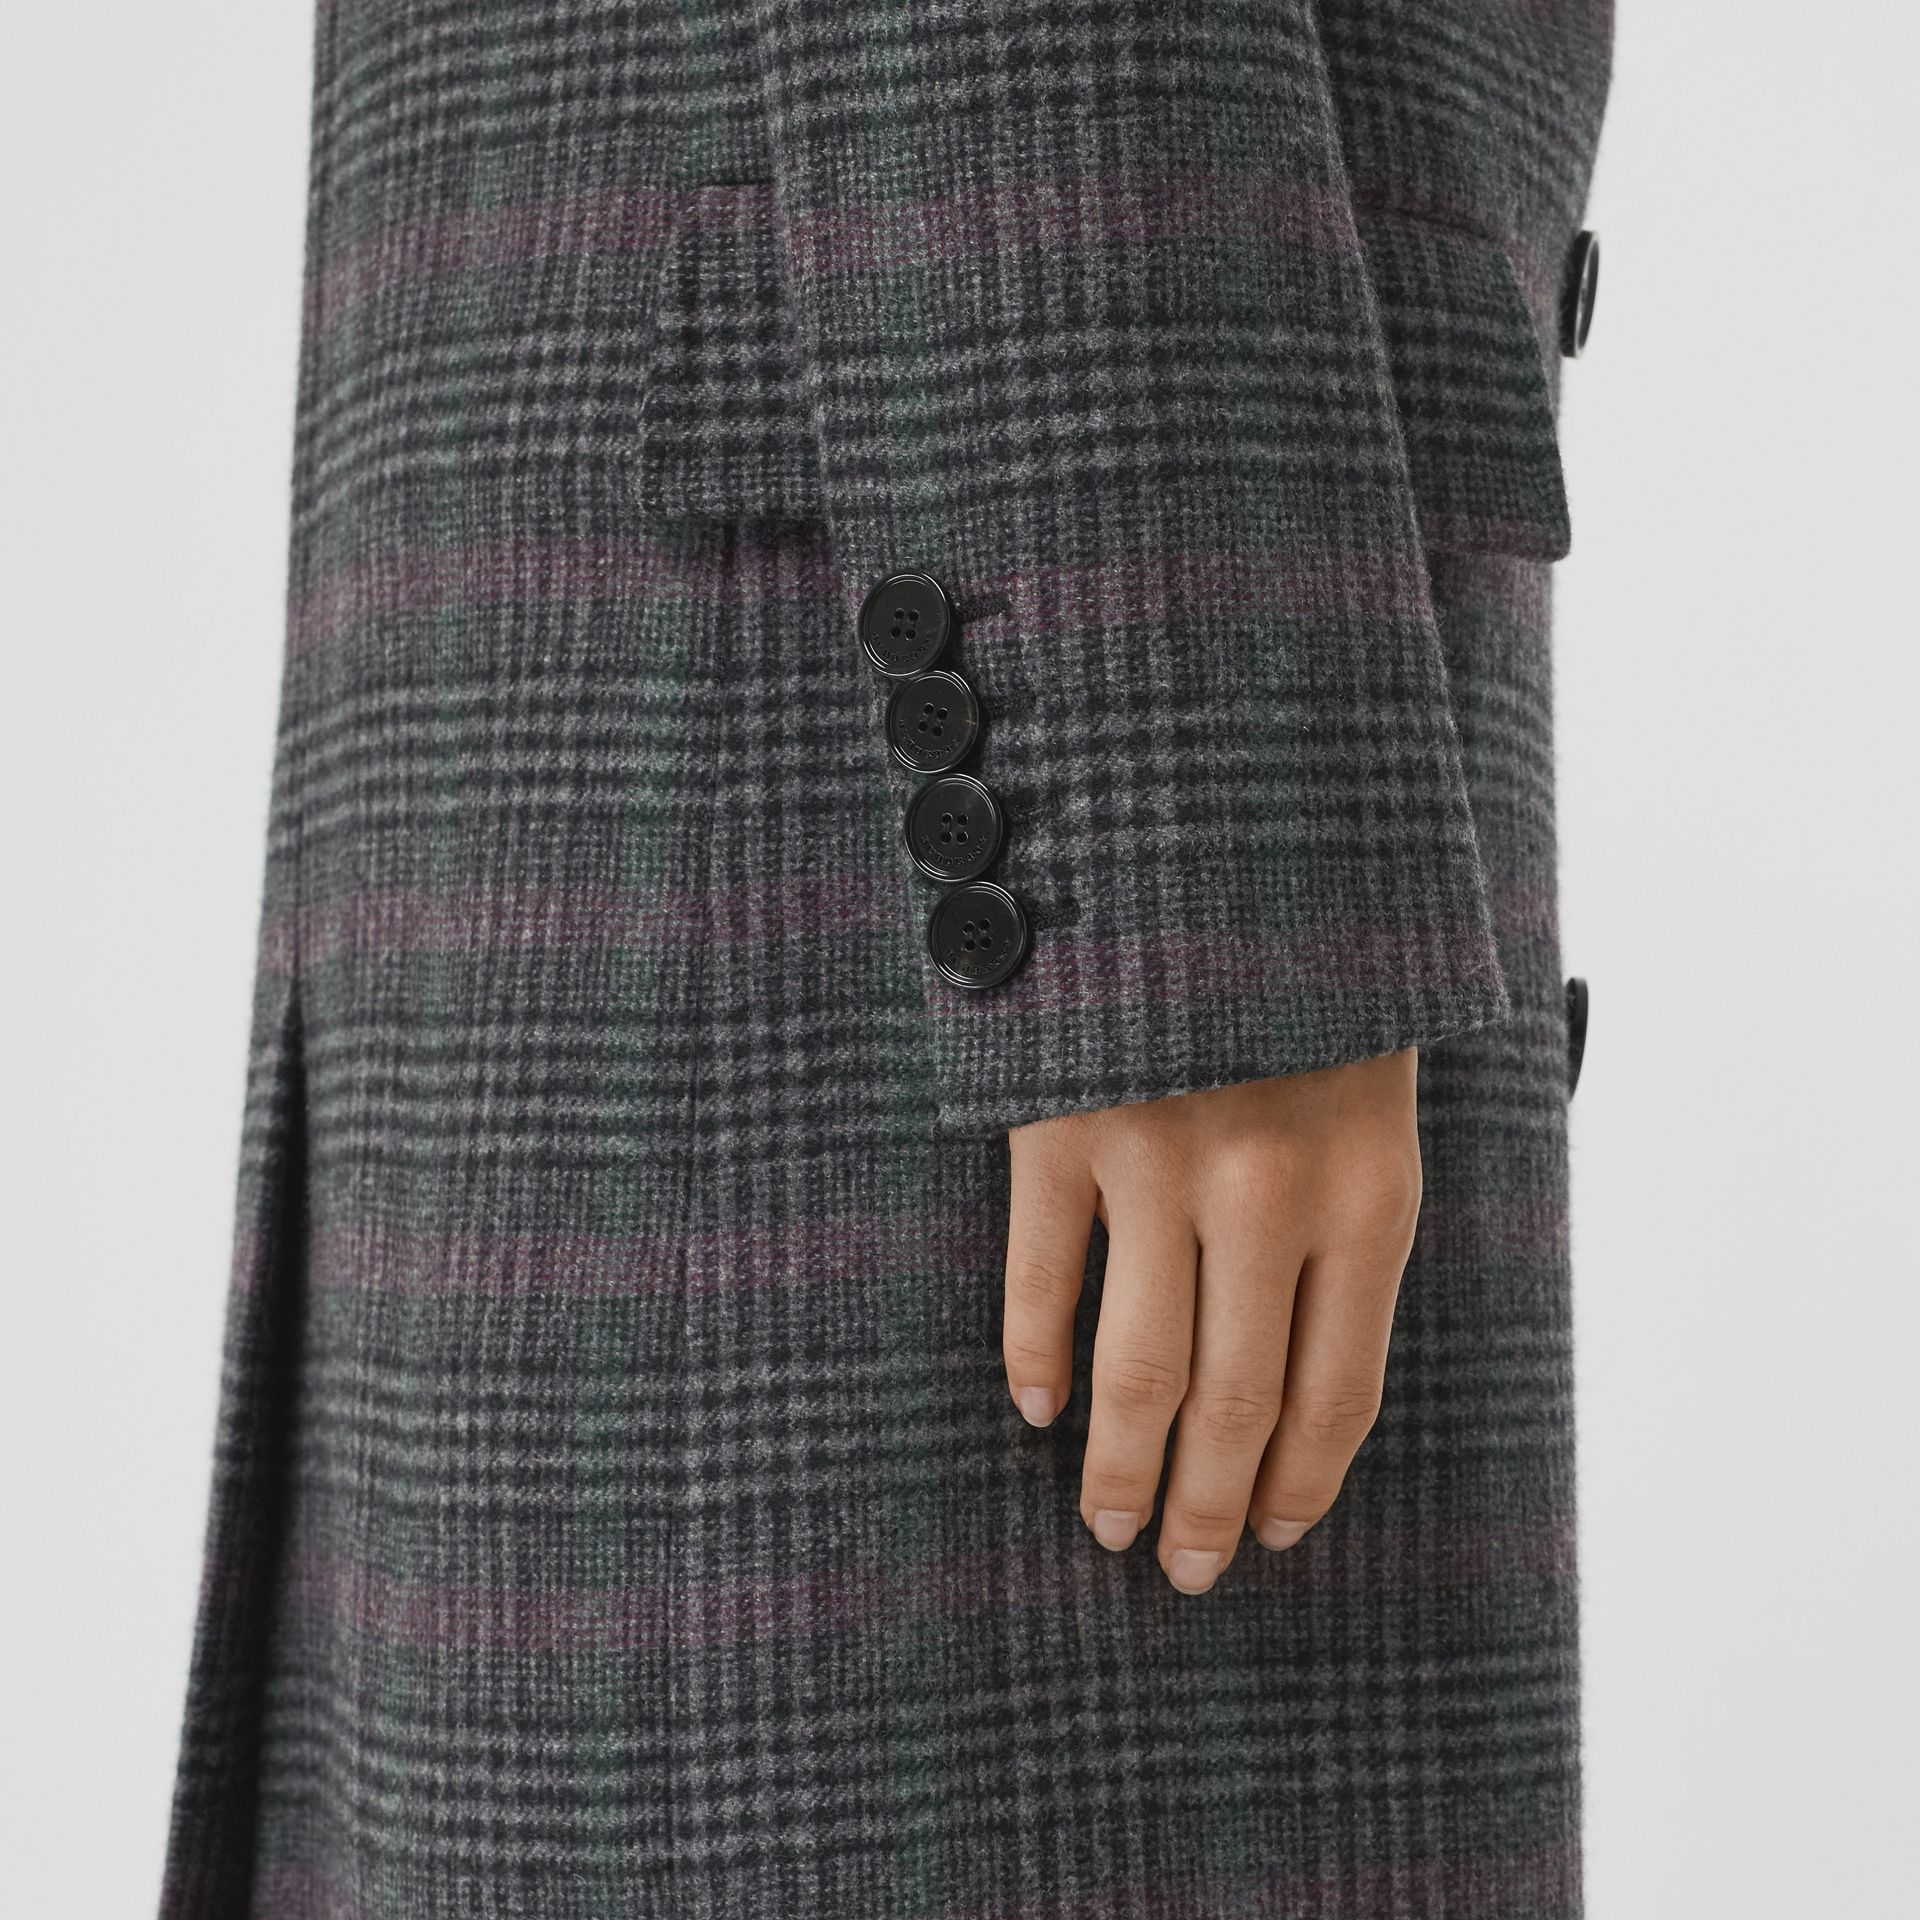 Prince of Wales Check Wool Tailored Coat in Charcoal - Women | Burberry United Kingdom - gallery image 4